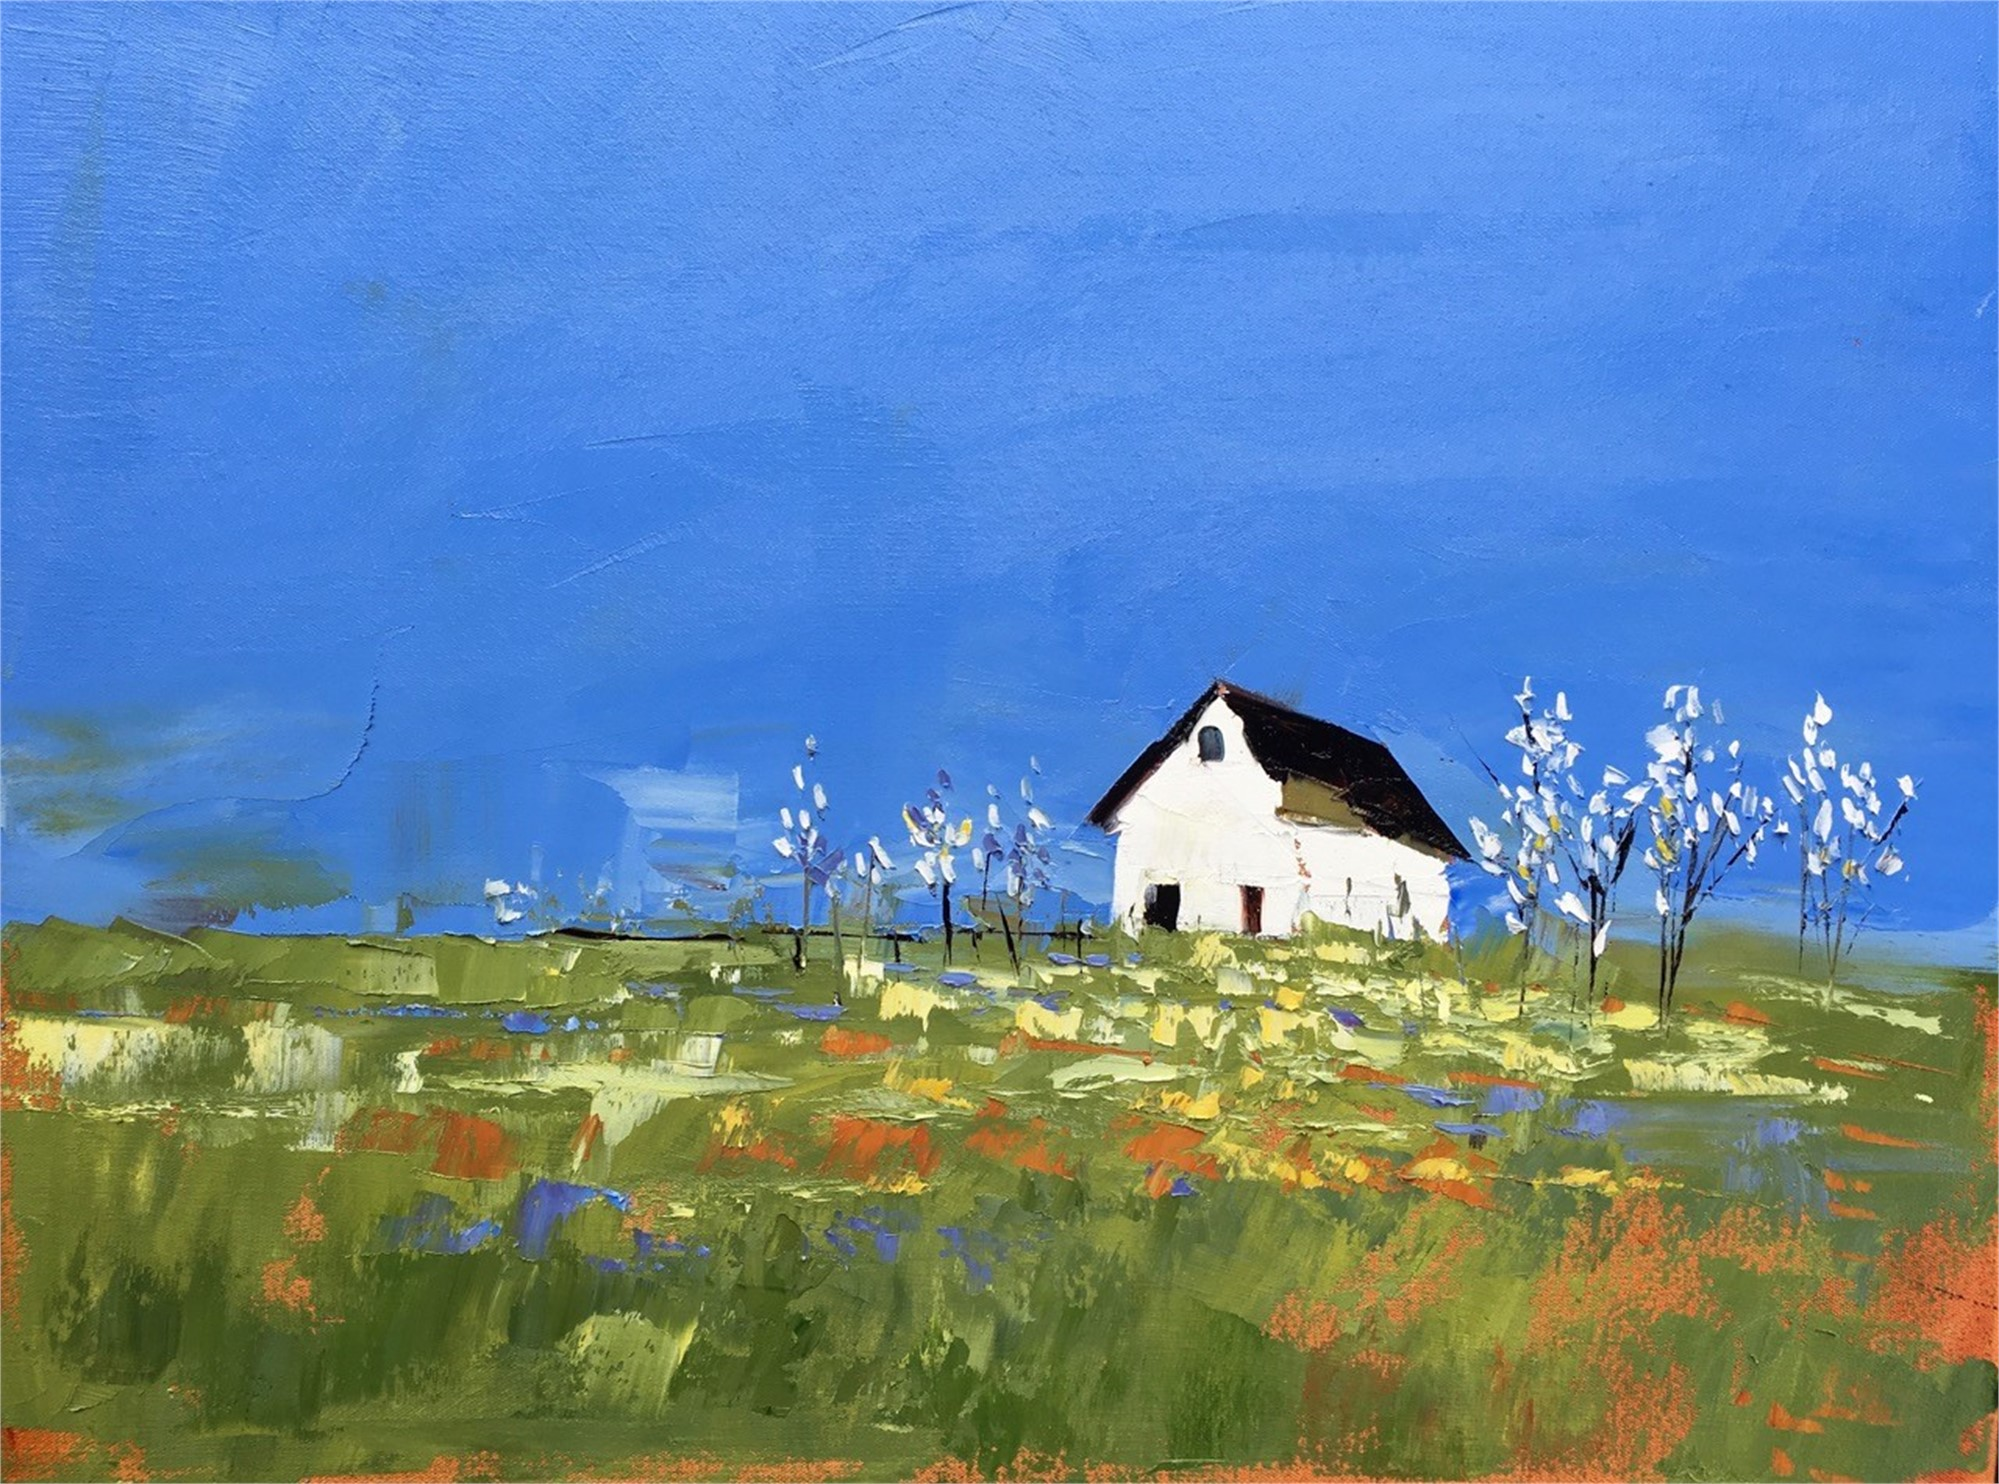 White Barn in Summer by Sandra Pratt